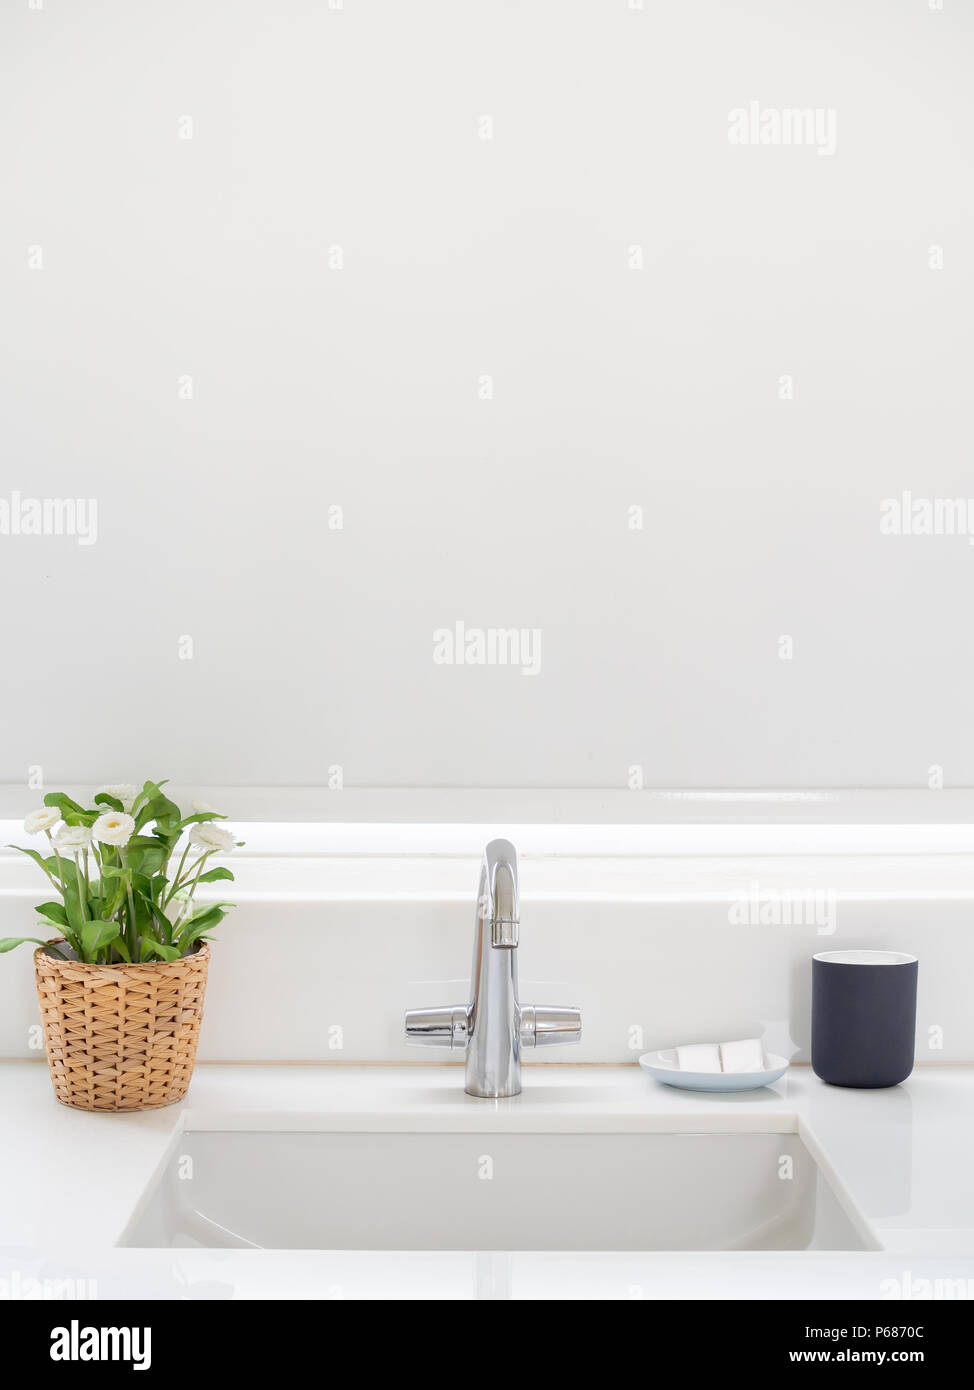 Clean White Bathroom Interior with Sink Basin Faucet, Flower in ...